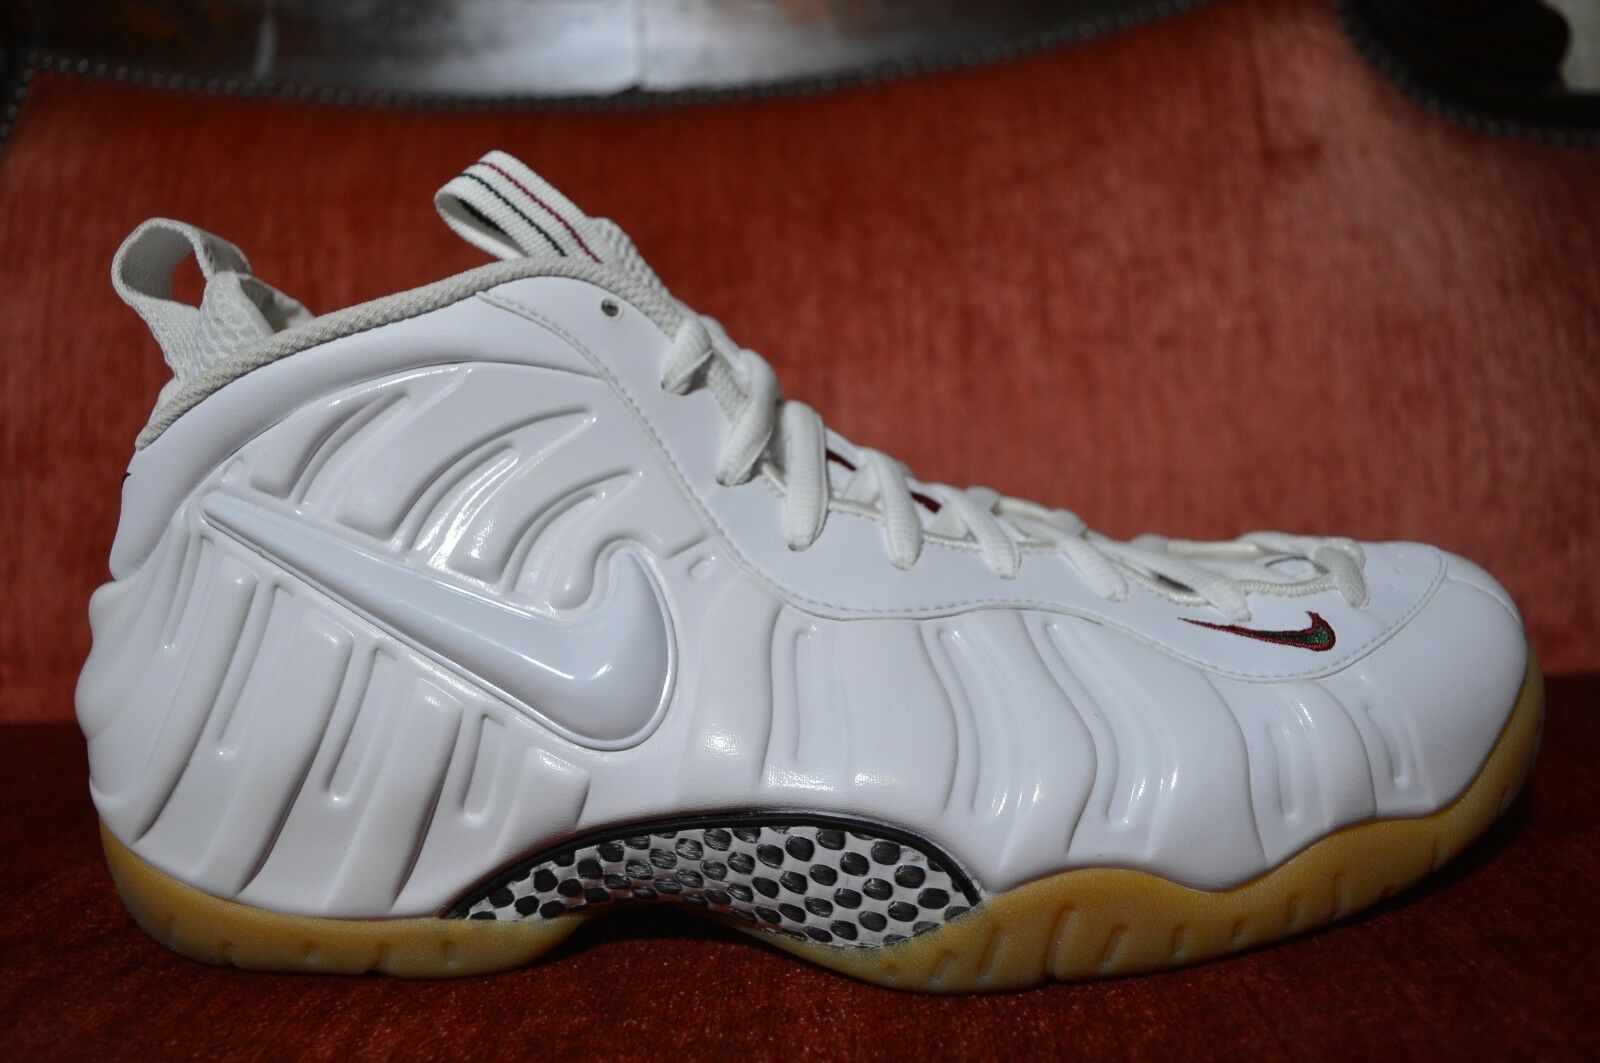 CLEAN Nike Air Foamposite Pro White Gorge Green Gym Red Size 12.5 624041-102